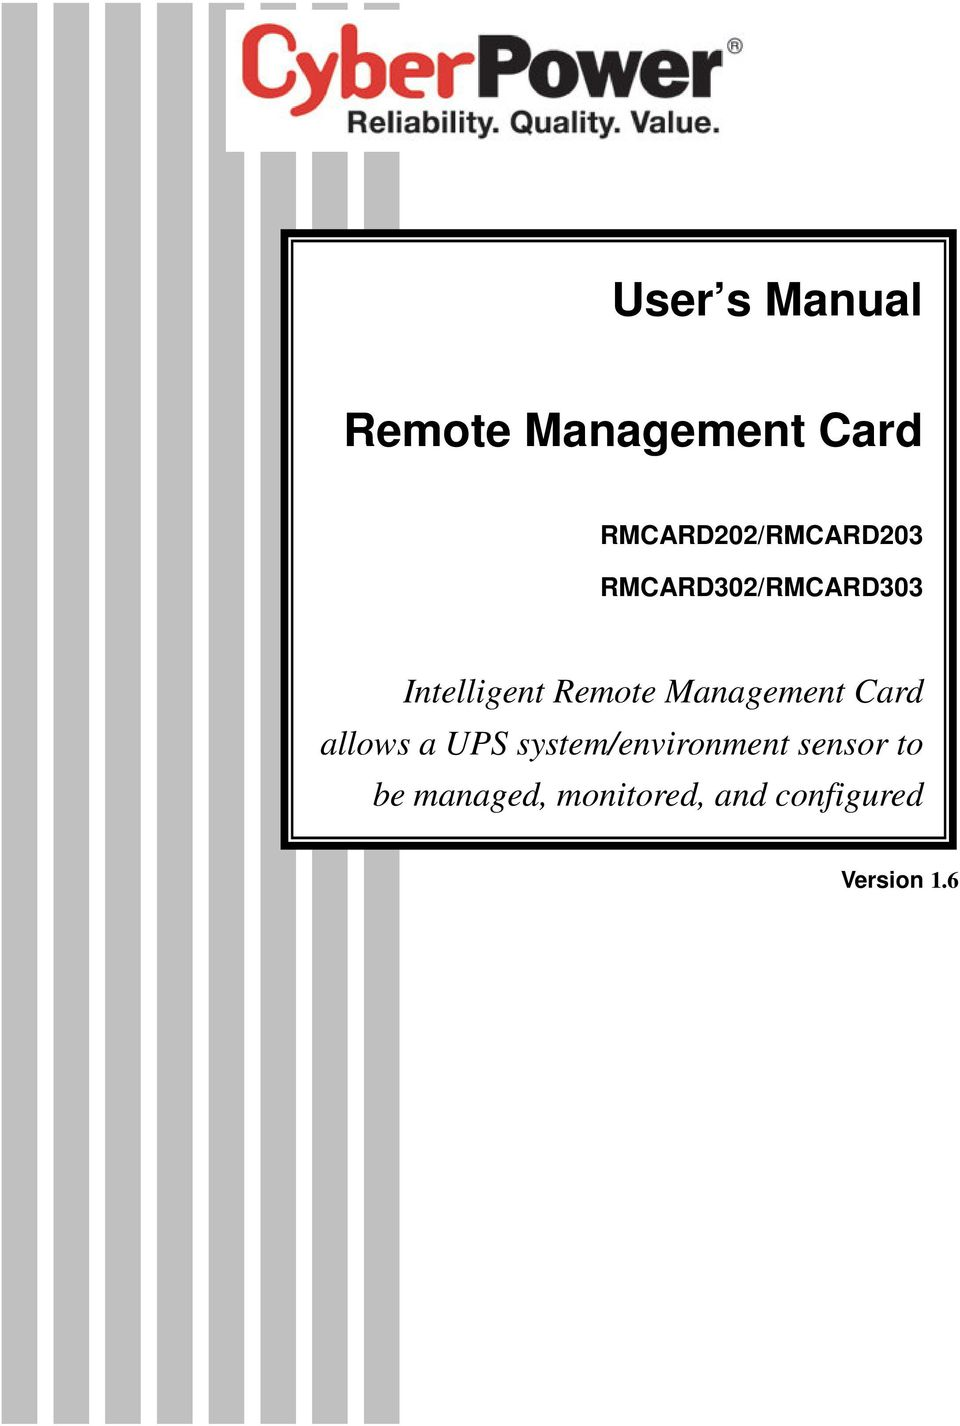 Intelligent Remote Management Card allows a UPS